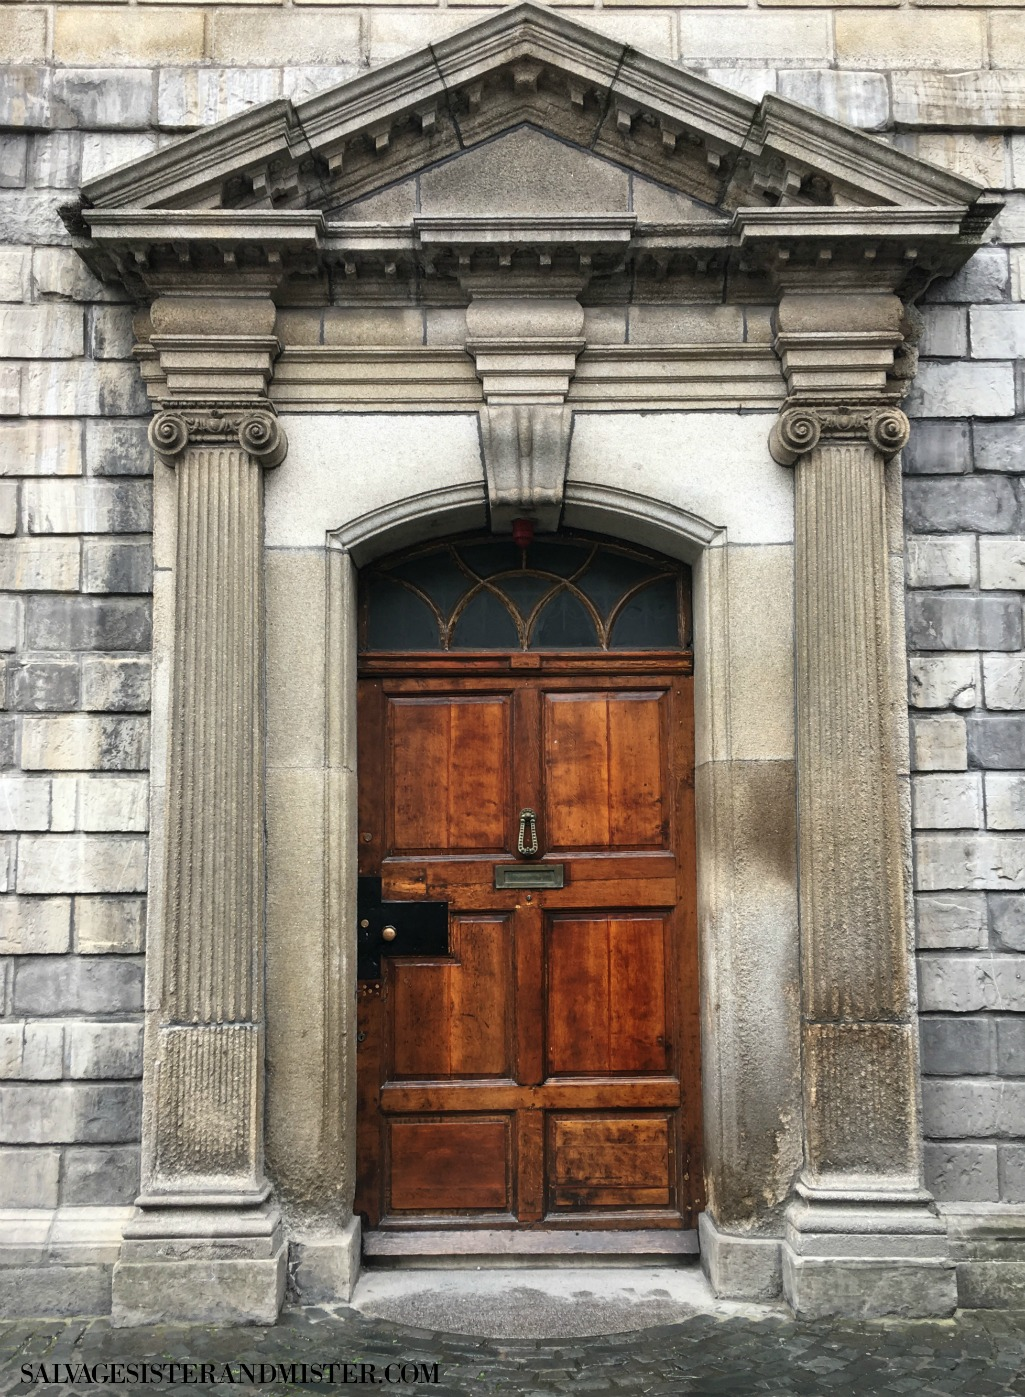 The beautiful doors of Ireland on salvagesisterandmister - salvage travel